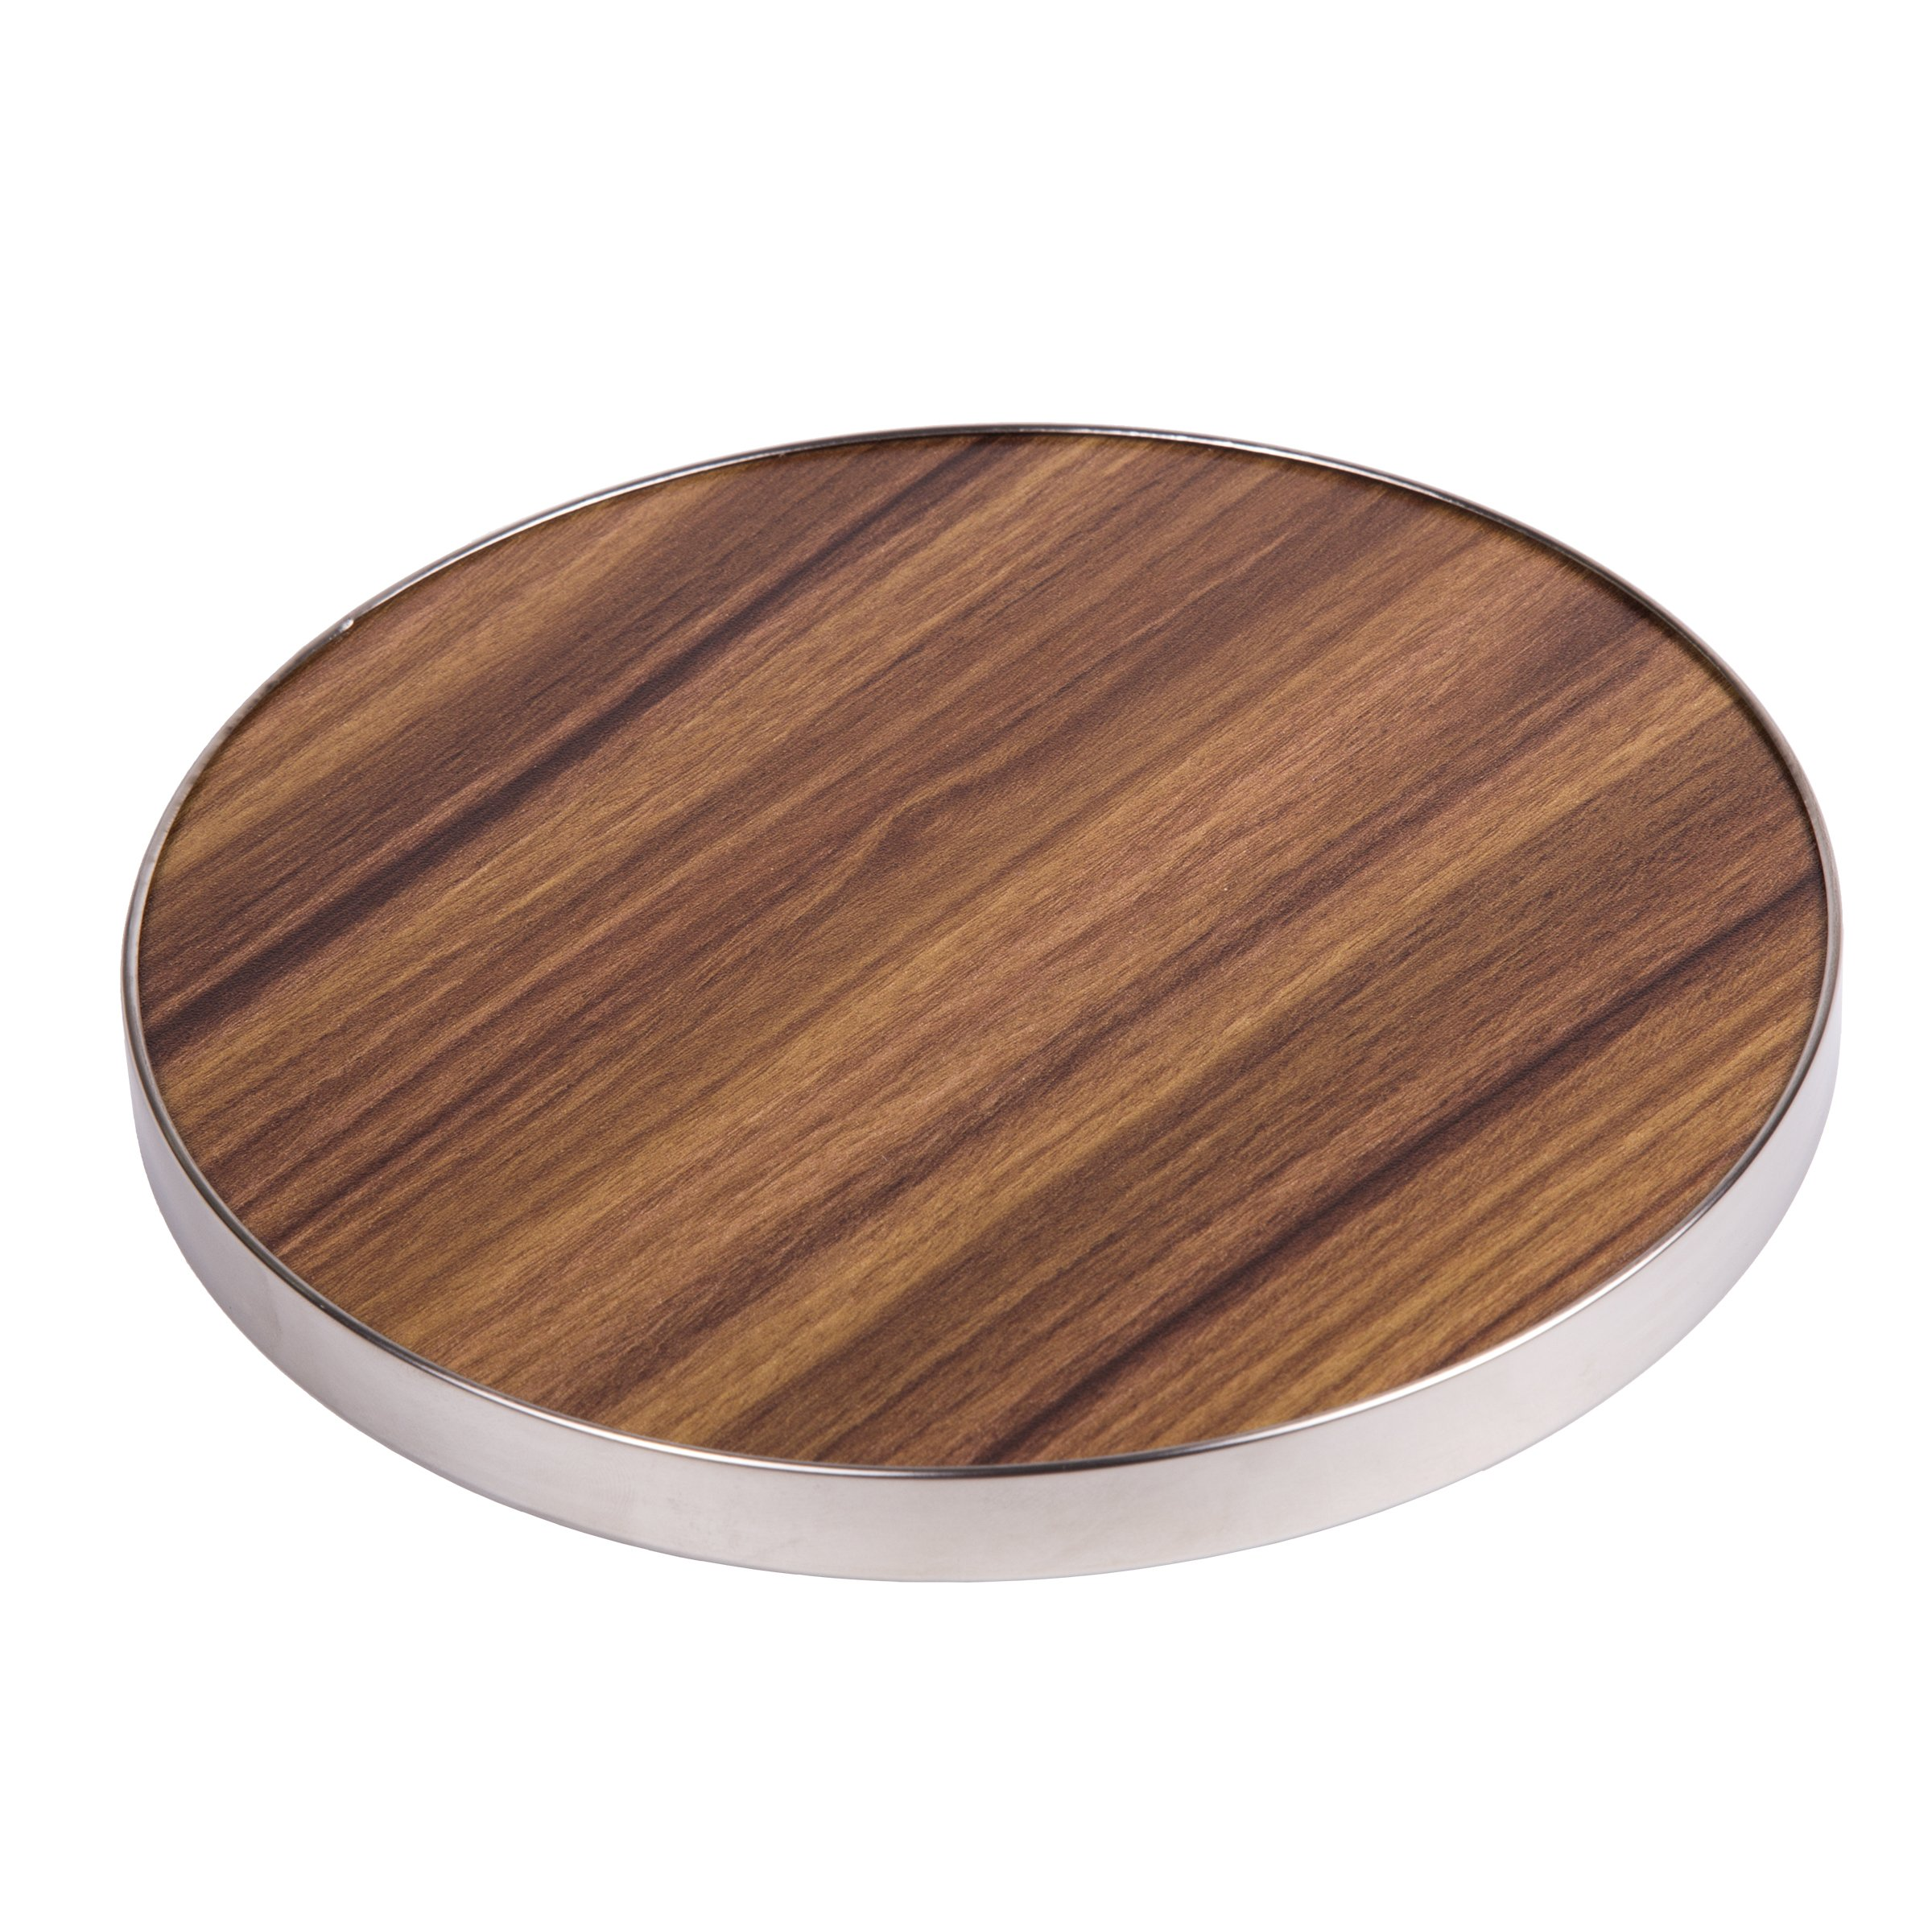 "Creative Home 50249 Fiber 7"" Round Trivet, Serving Board Acacia Wood Finish and Stainless Steel Trim, Brown by Creative Home (Image #1)"